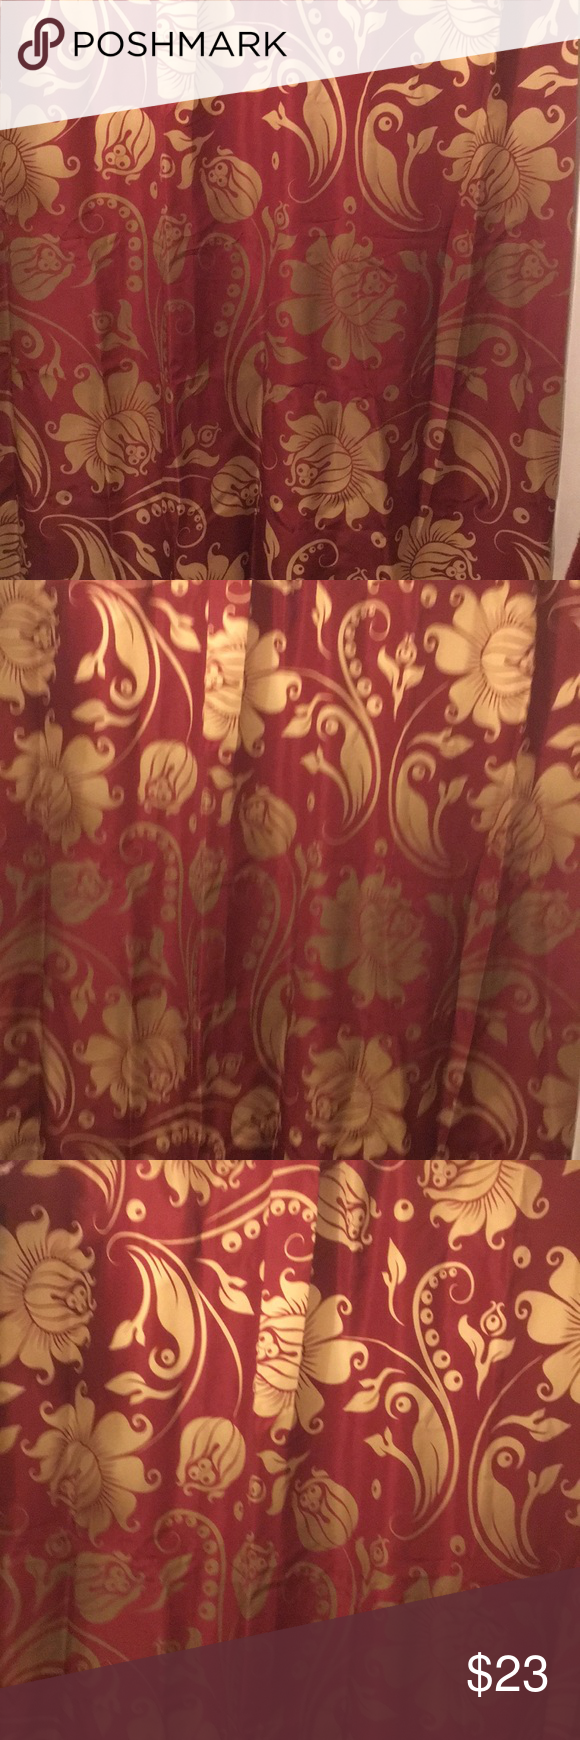 burgundy and gold shower curtain brand